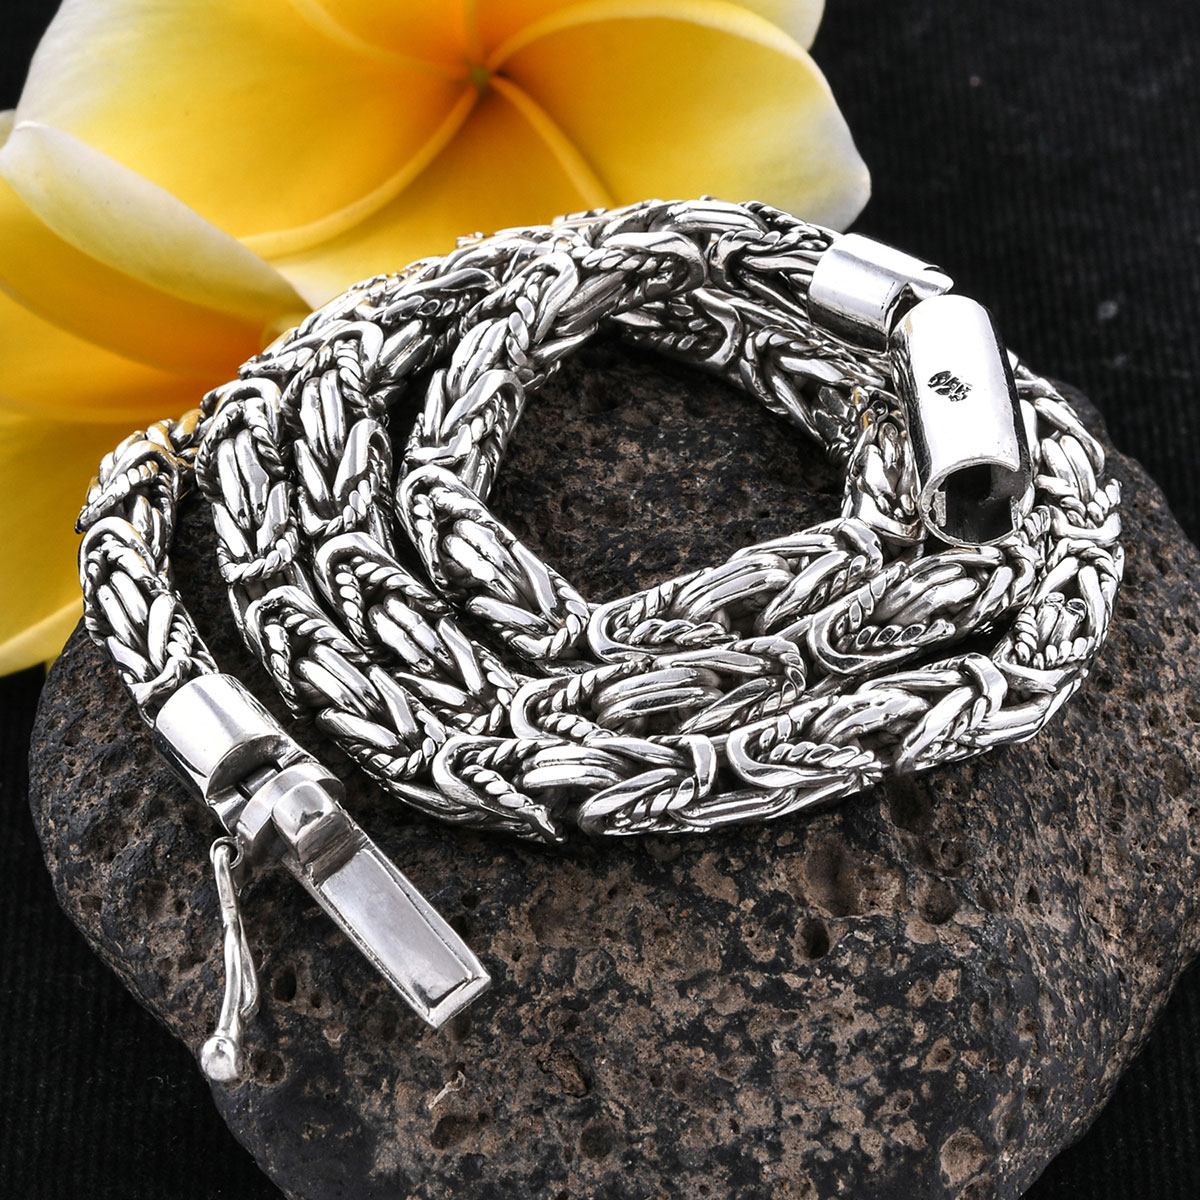 Bali Legacy Twisted Borobudur Necklace (20 in) in Sterling Silver (78.75 g)